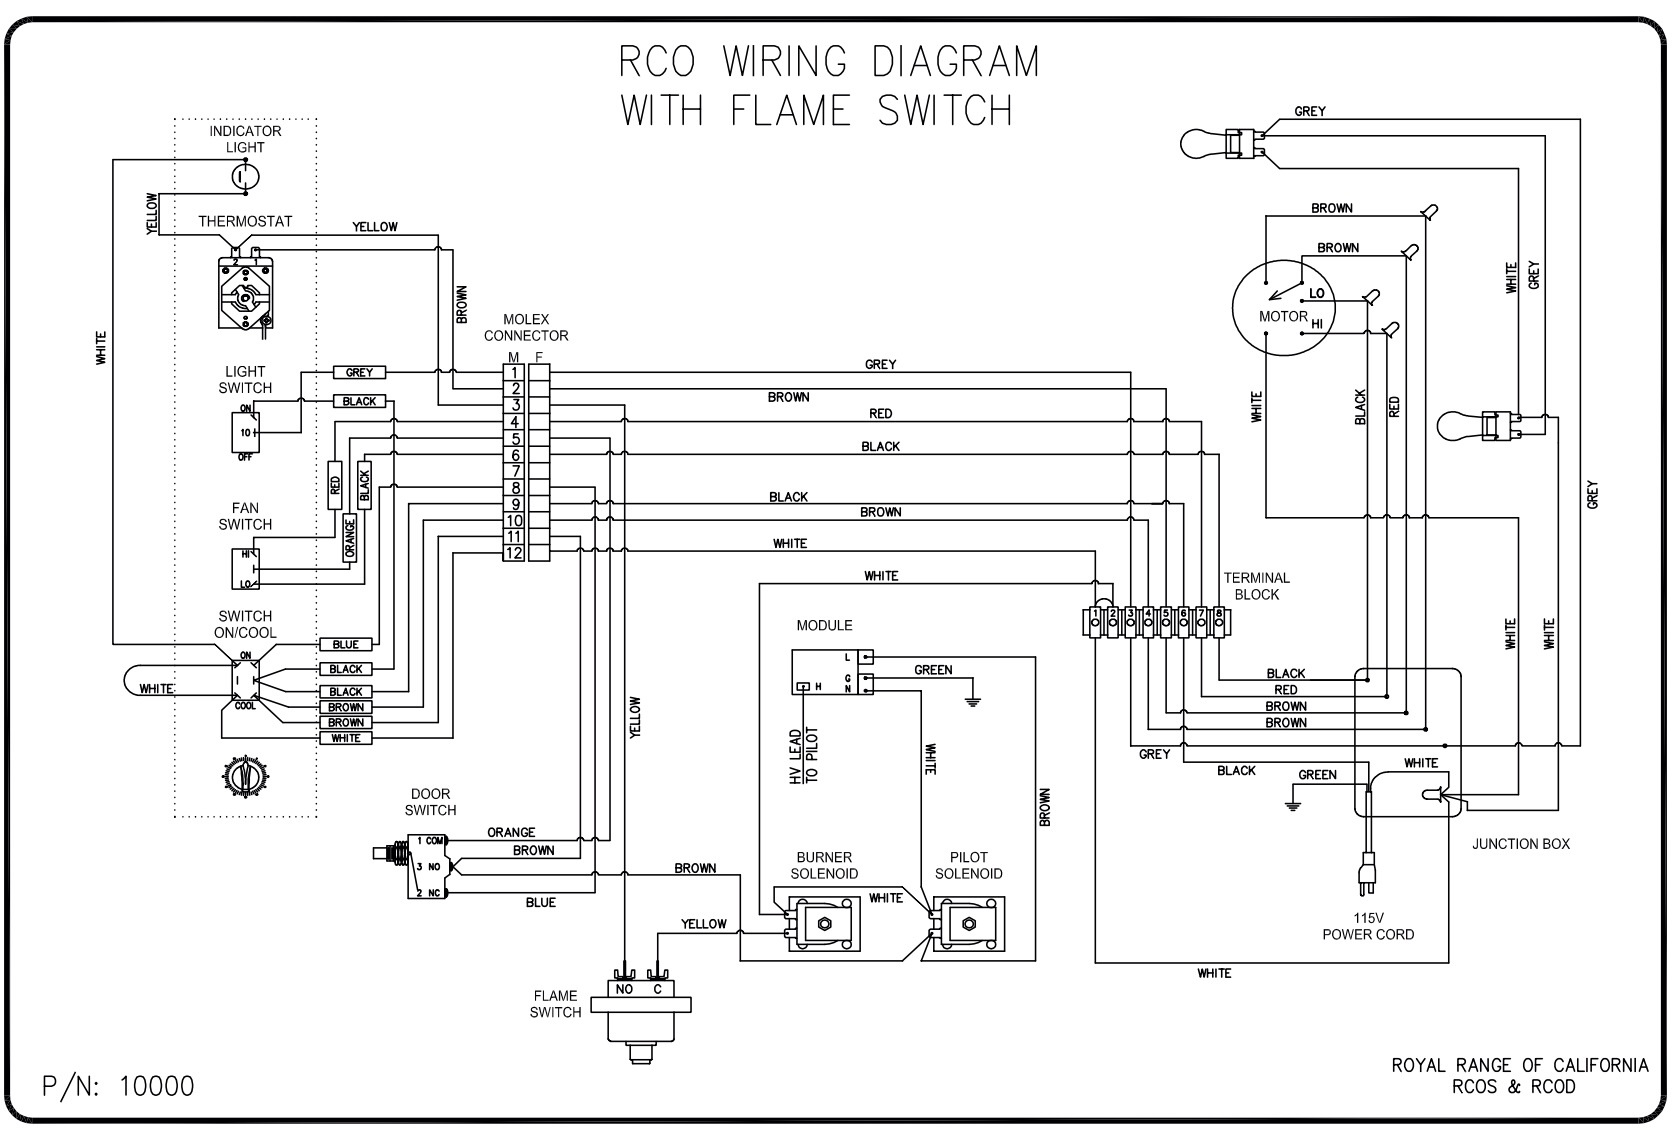 Power Flame Wiring Diagram : Power flame wiring diagram skating clip art